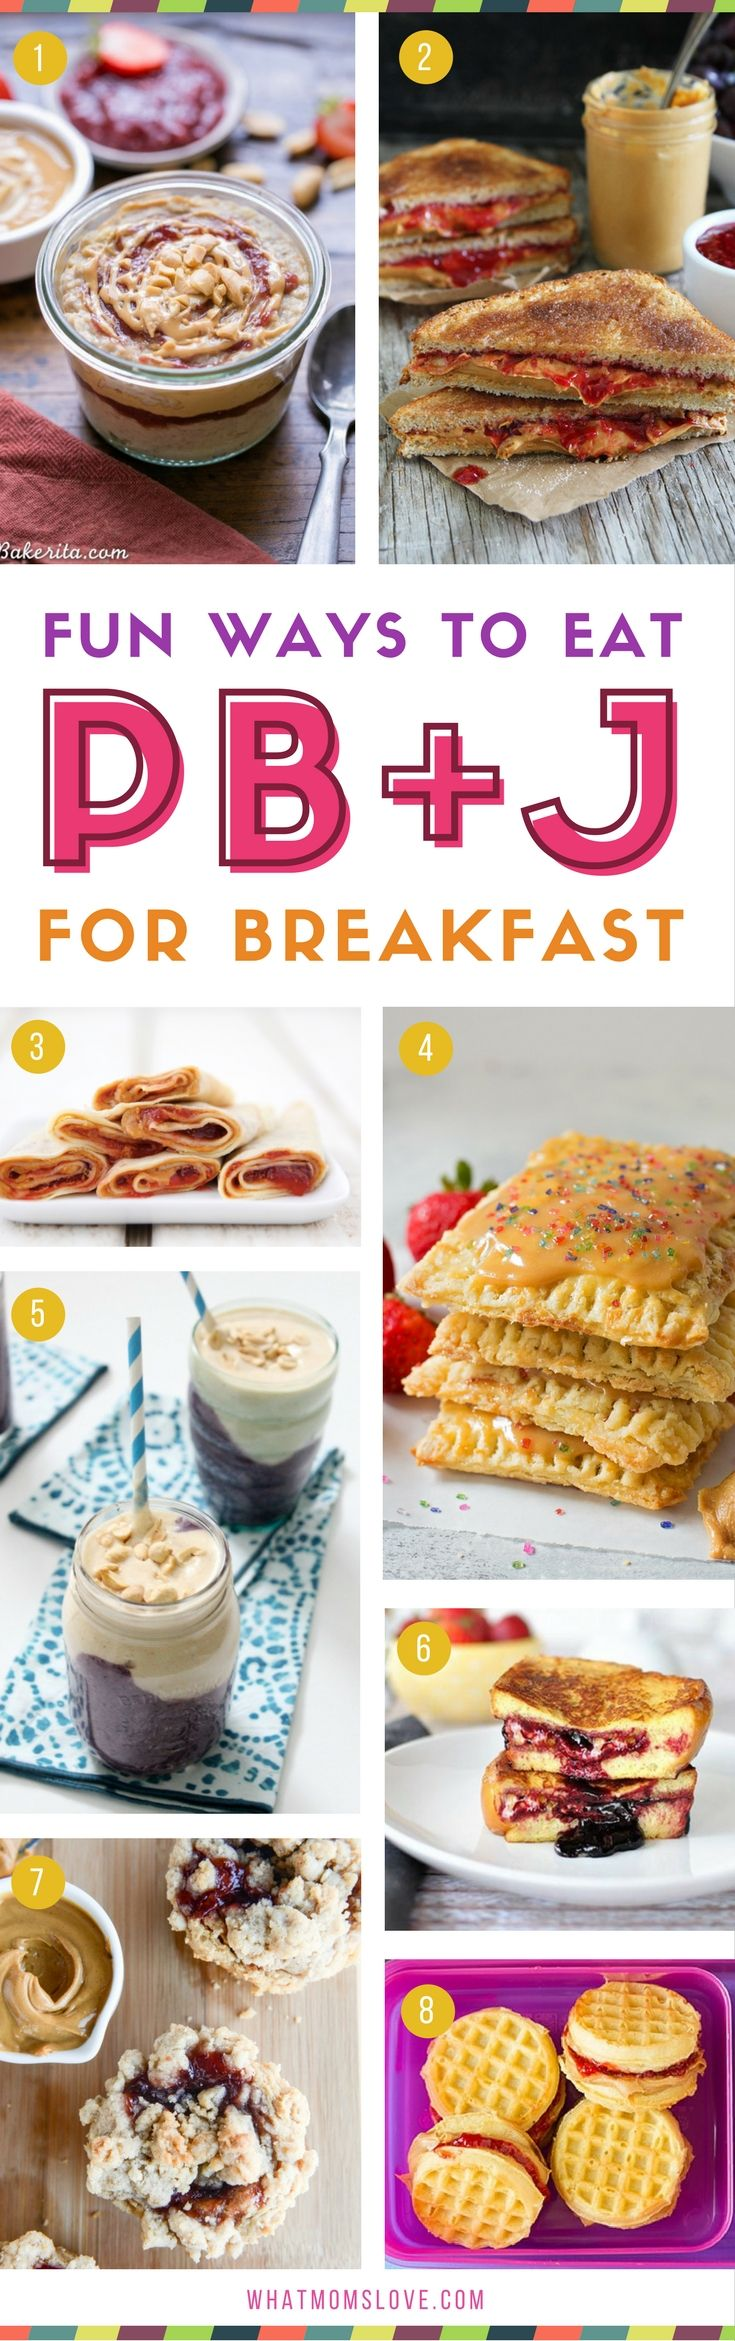 Peanut Butter Jelly breakfast for kids | Easy and fun PBJ recipes including smoothies, muffins and pancakes! Great for on the go and picky eaters